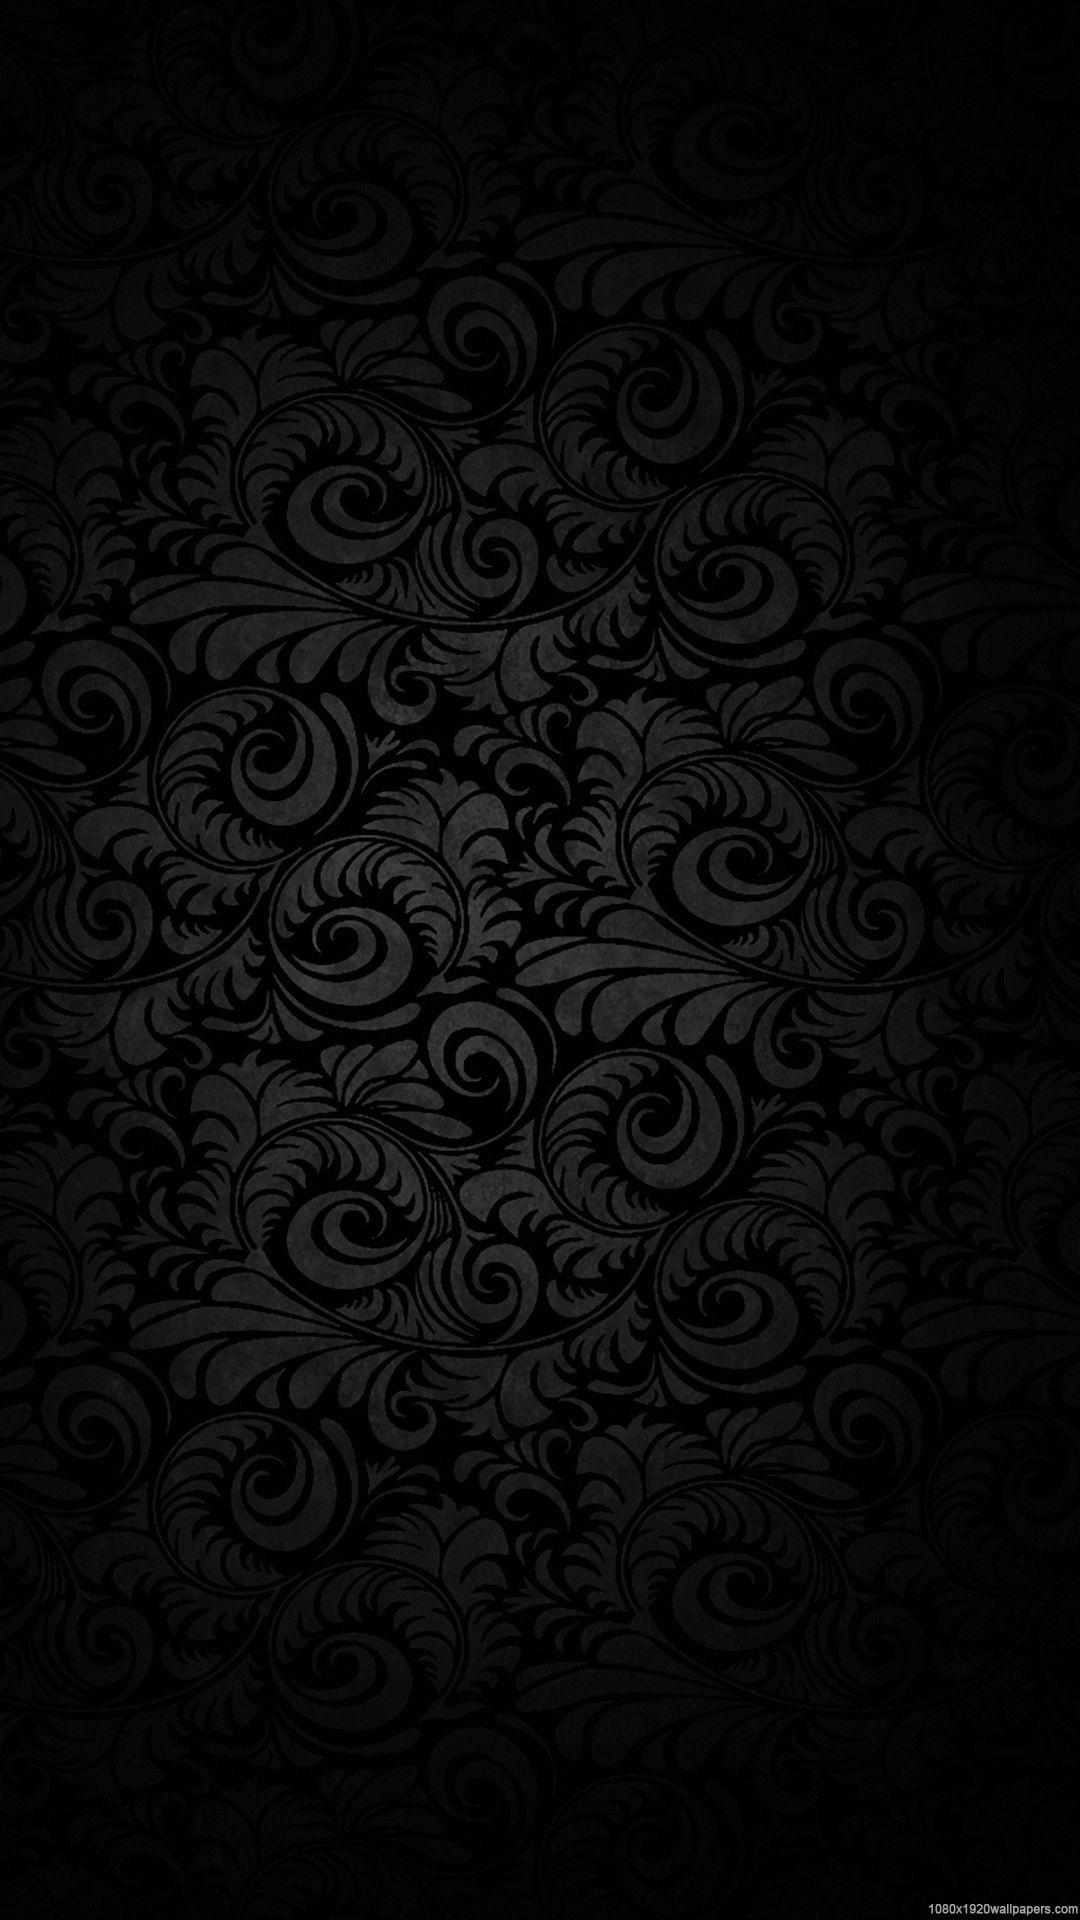 Black Hd Wallpapers 1080p Mobile 38